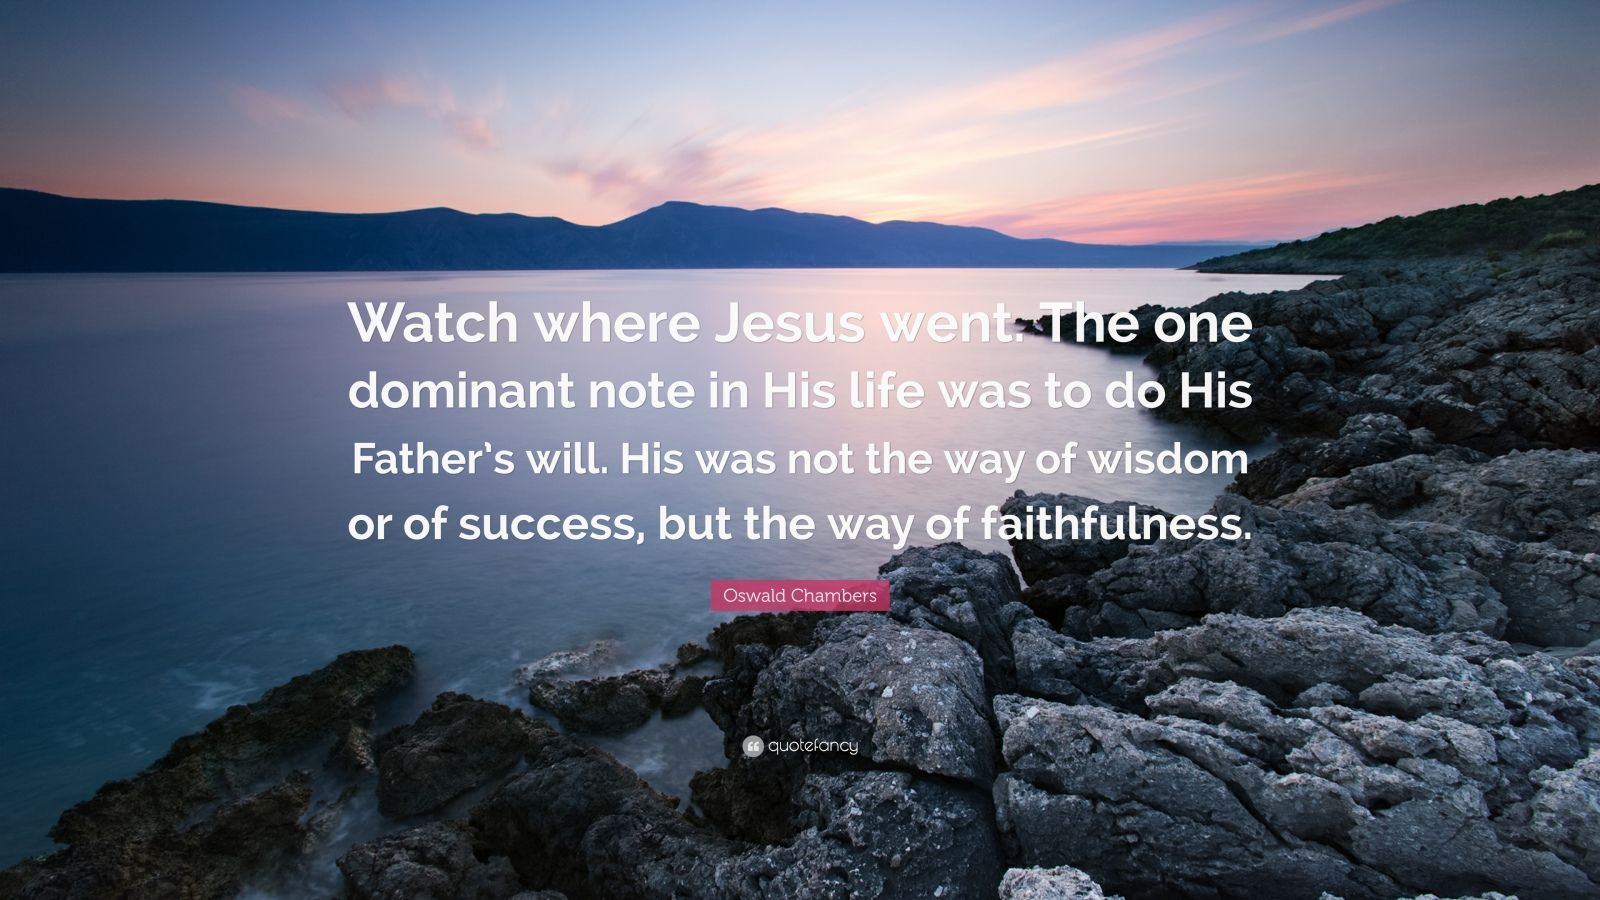 "Oswald Chambers Quote: ""Watch where Jesus went. The one dominant note in His life was to do His Father's will. His was not the way of wisdom or of success, but the way of faithfulness."""